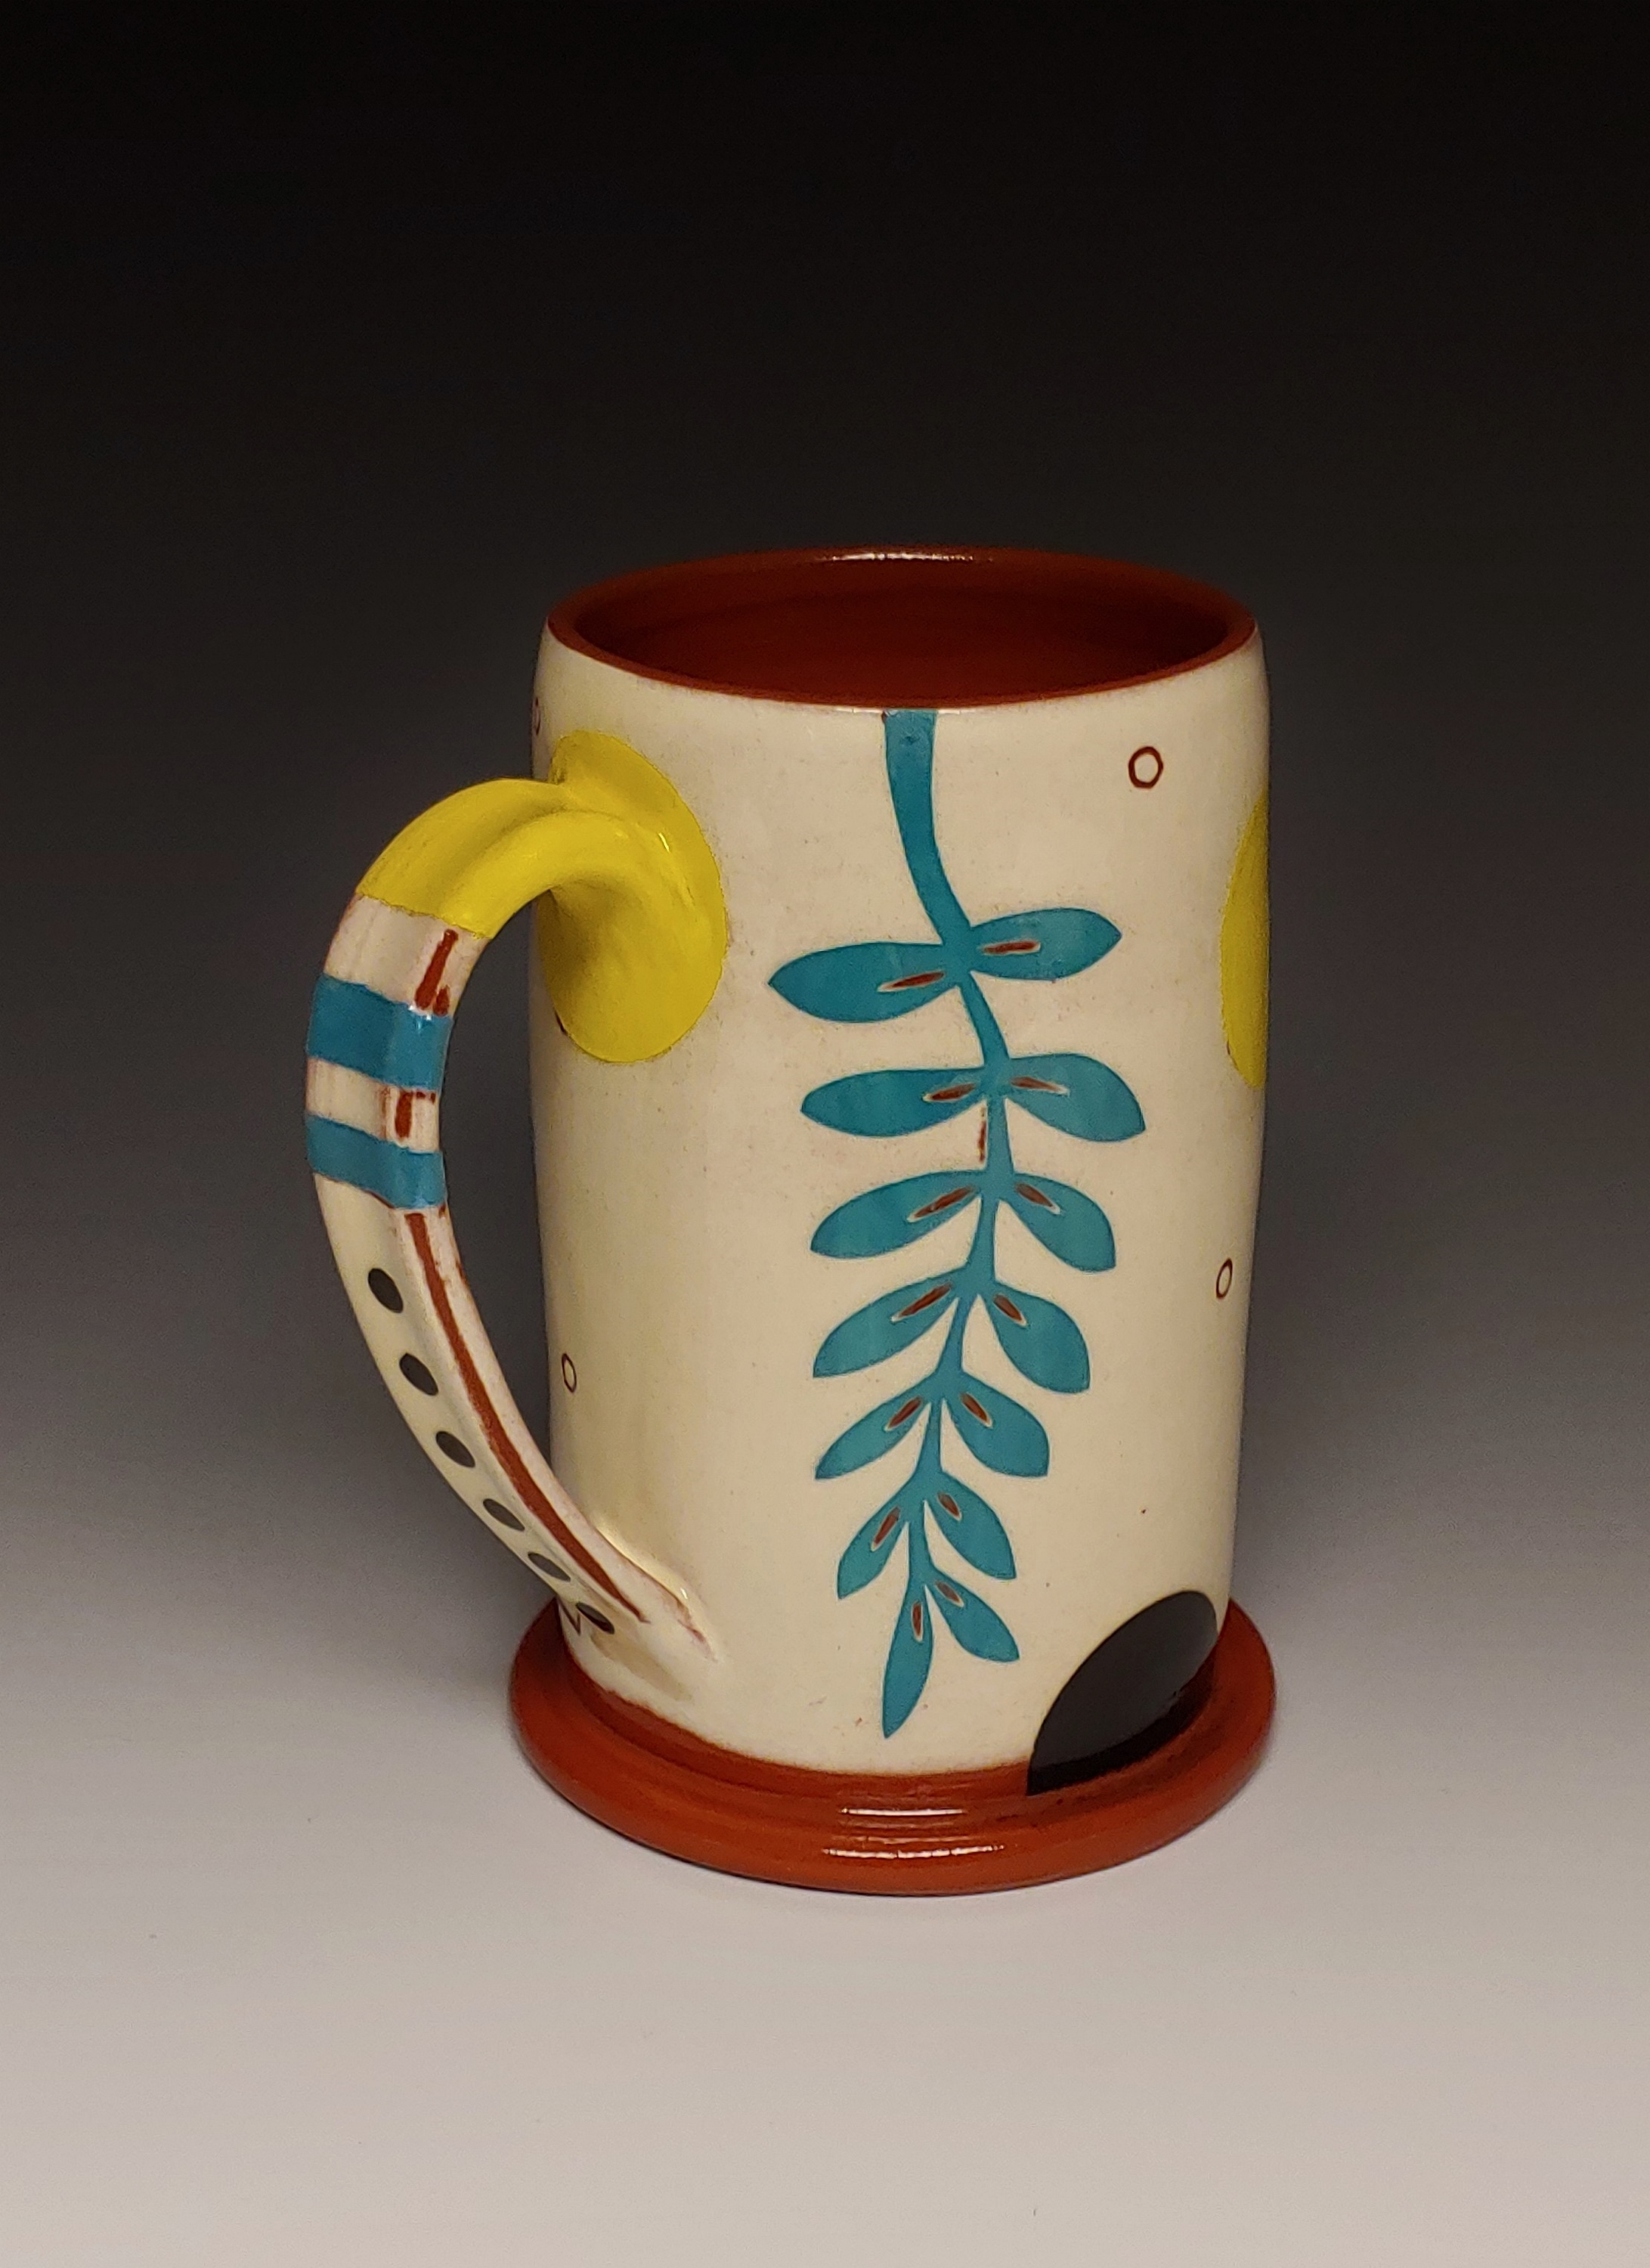 Cheerful Mug with Turquoise Leaf Dots and Tube Sock Stripes